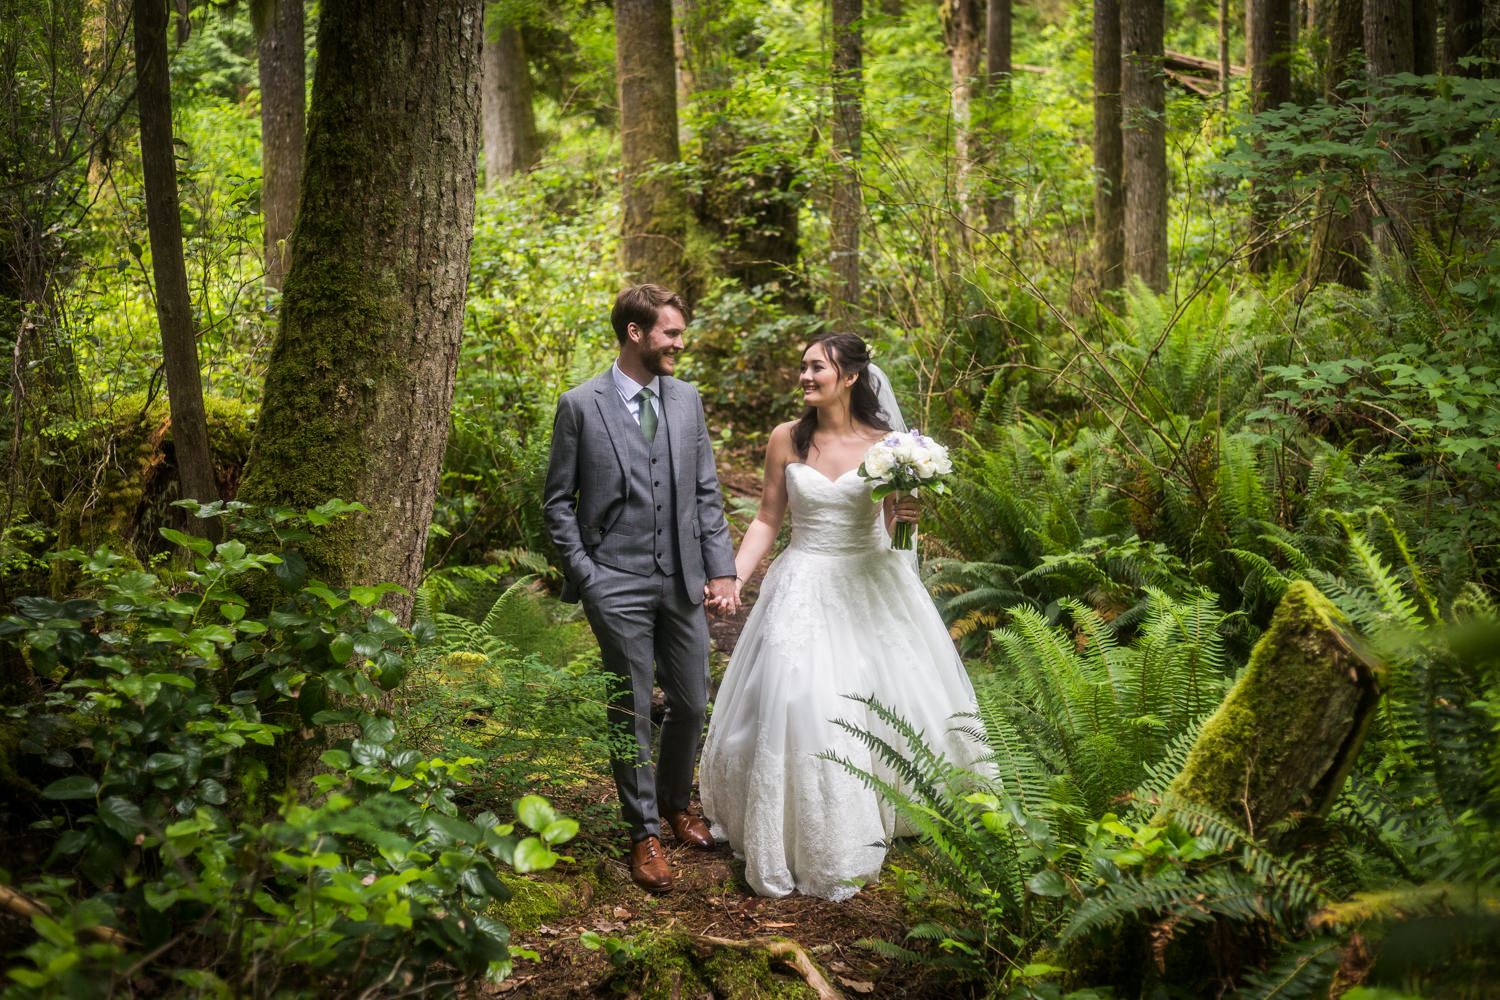 WEDDING AT WEST COAST WILDERNESS LODGE – KRISTY & KEVIN